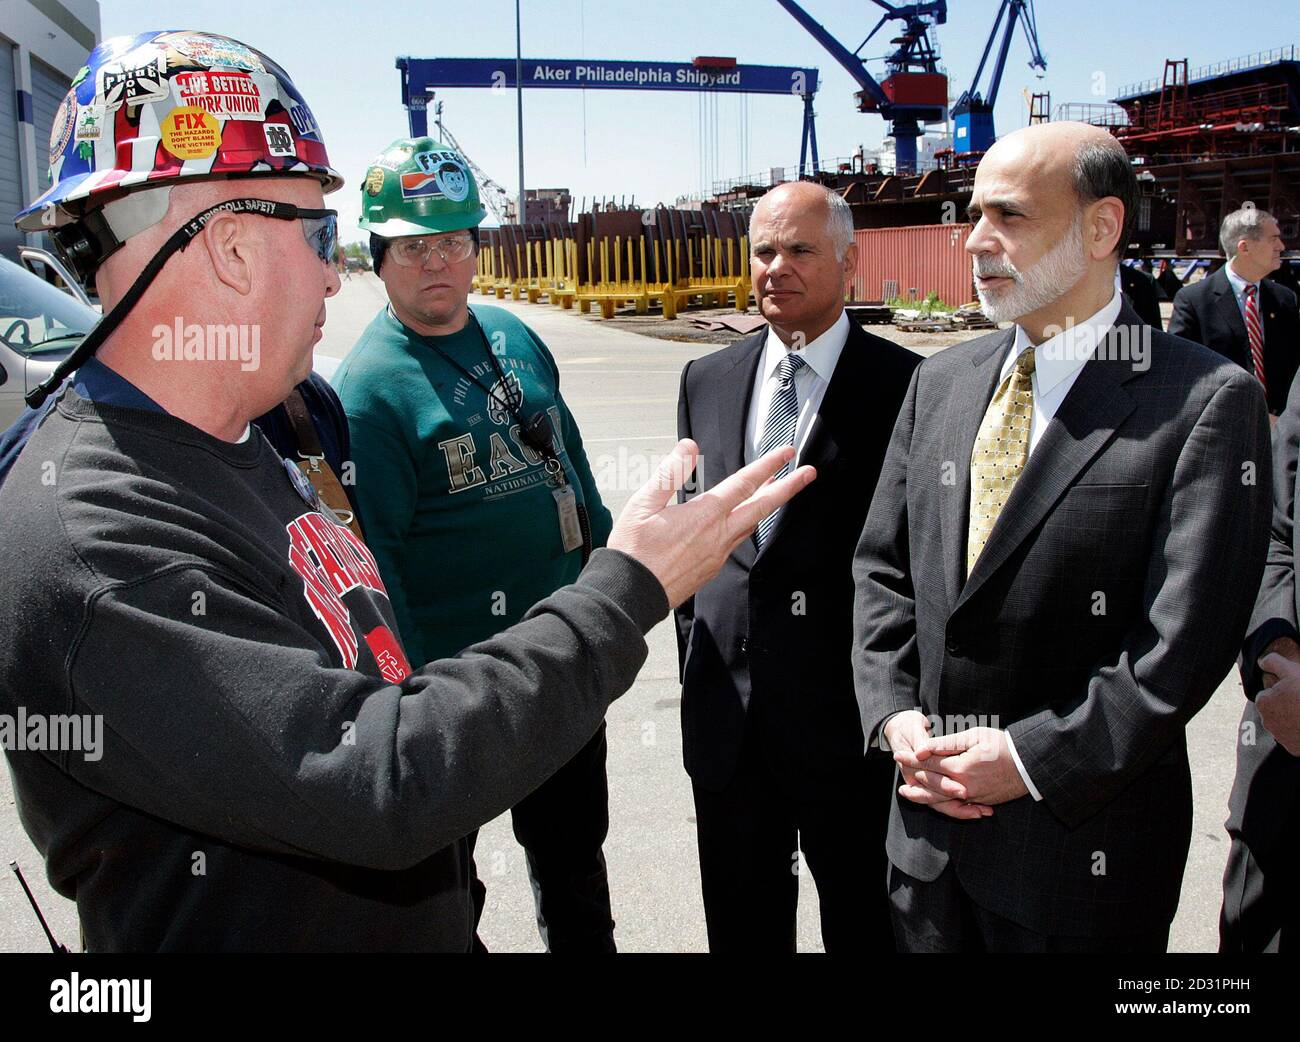 U.S. Federal Reserve Chairman Benjamin Bernanke (R) listens to Gary Gaydosh (L) describe the economic benefits brought by the Aker Philadelphia Shipyard to the regional economy during a tour of the shipyard in Philadelphia, Pennsylvania May 13, 2010. Looking on are Fred Chamerlain, (2nd L) and Charles Pizzi (2nd R), Chairman, federal reserve bank of Philadelphia, Board of Director.  REUTERS/Tom Mihalek (United States - Tags: BUSINESS POLITICS) Stock Photo